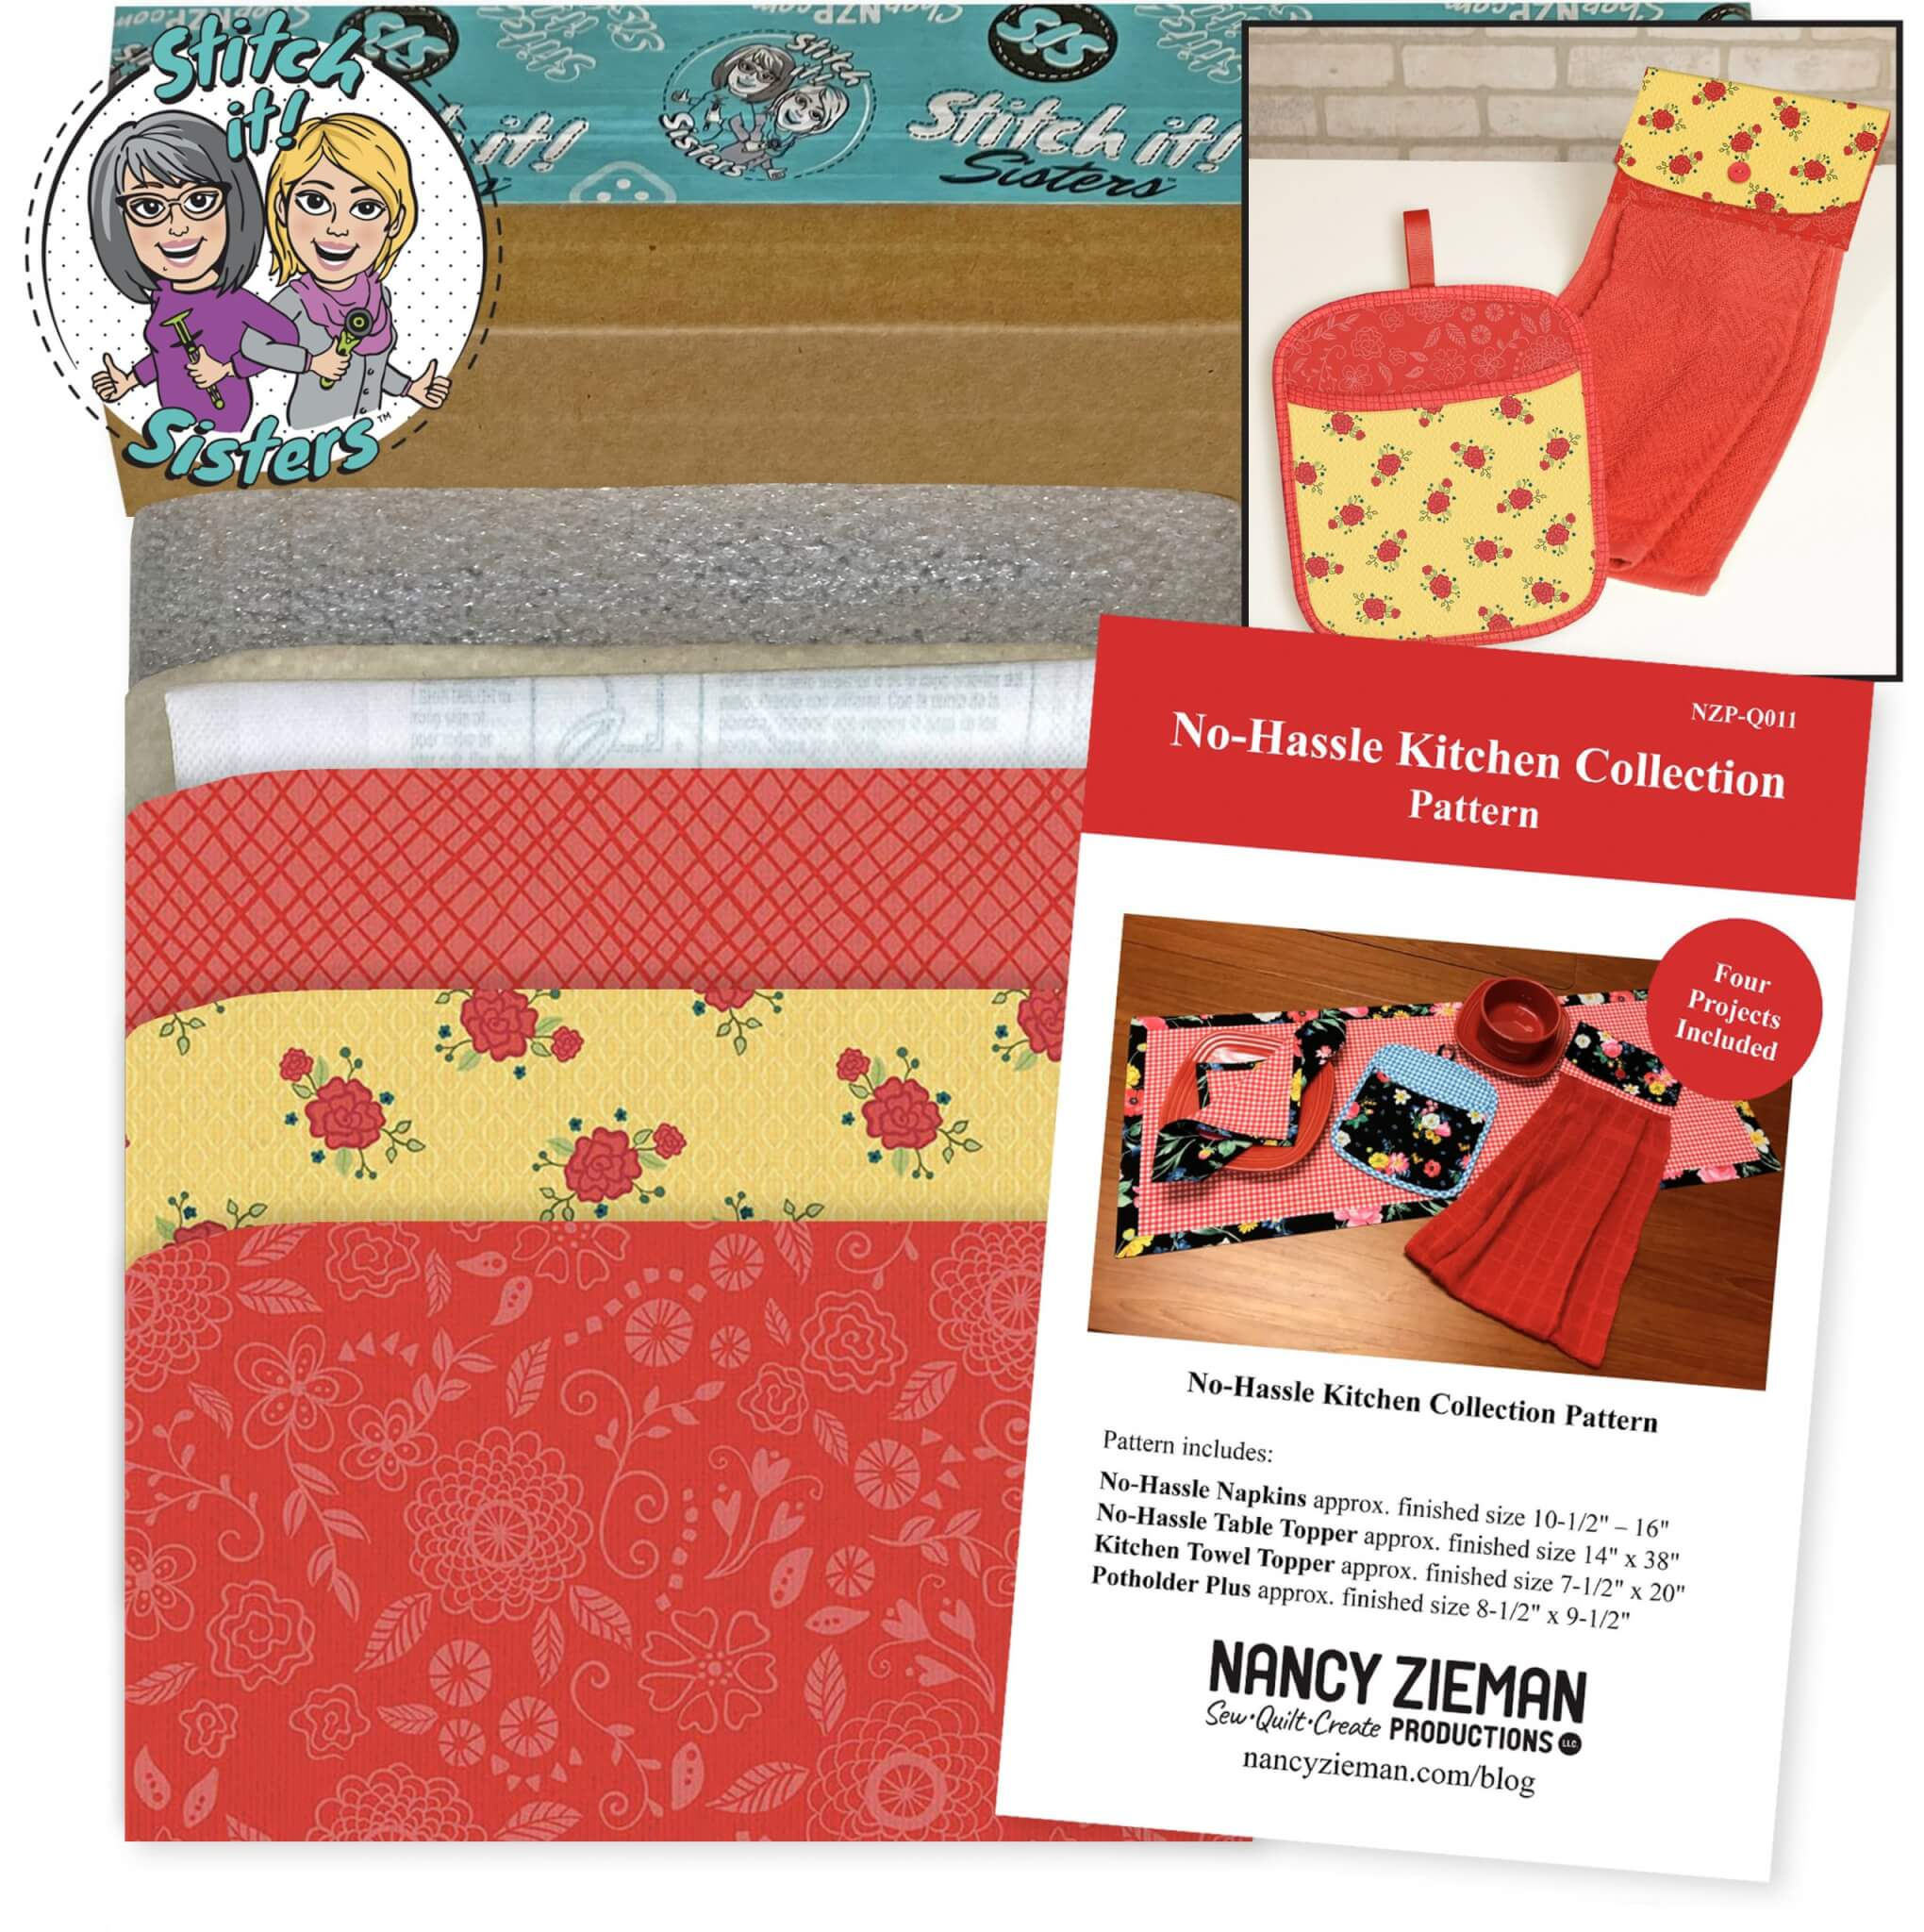 Red & Yellow Wildflower Boutique No-Hassle Potholder Plus and Towel Topper Bundle Box available at ShopNZP.com and Nancy Zieman Productions